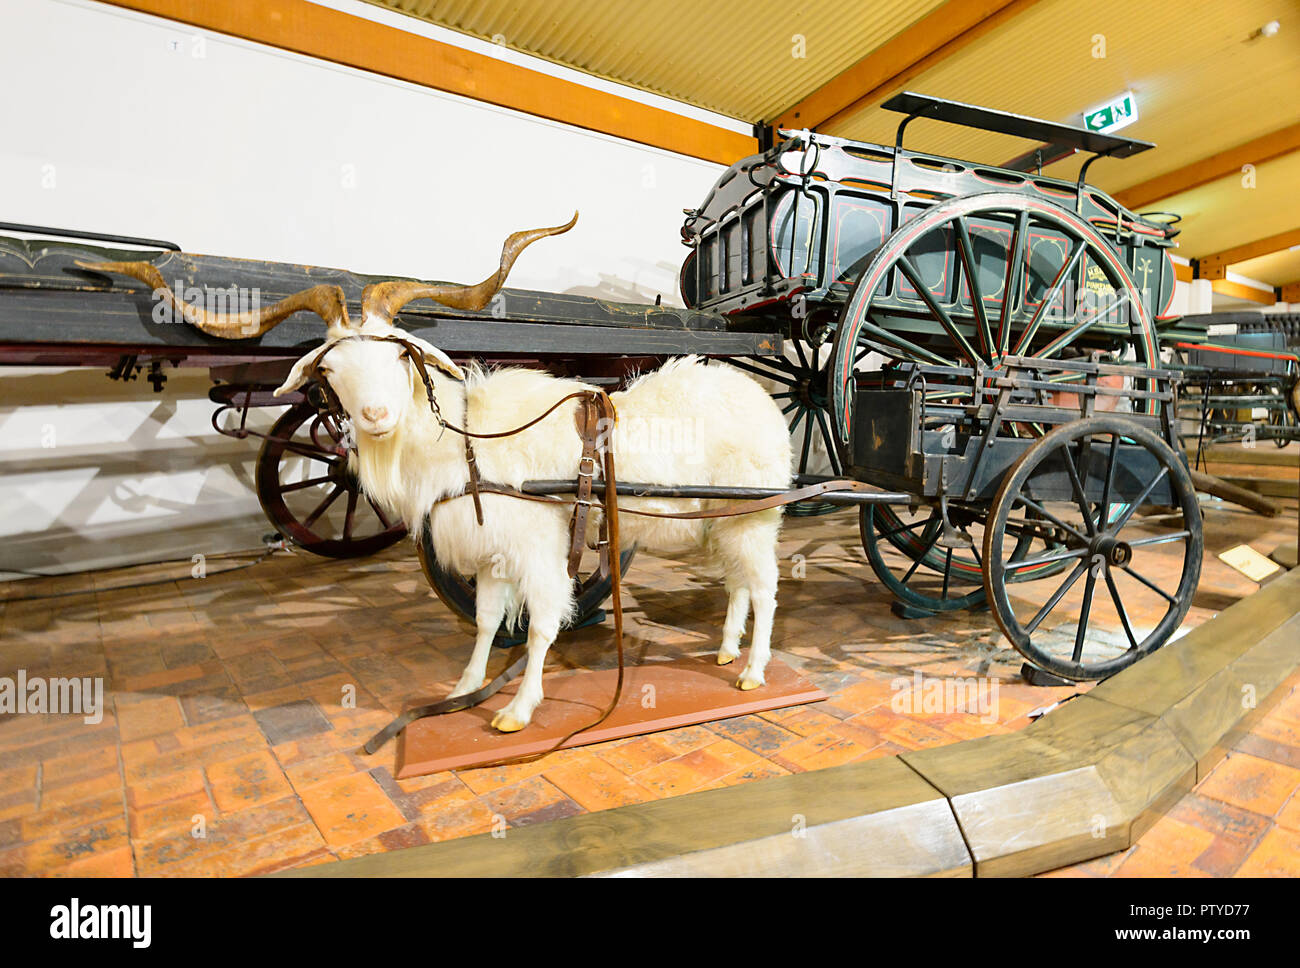 Goat drawn cart on display at the Cobb & Co Museum, Toowoomba, Southern Queensland, QLD, Australia - Stock Image